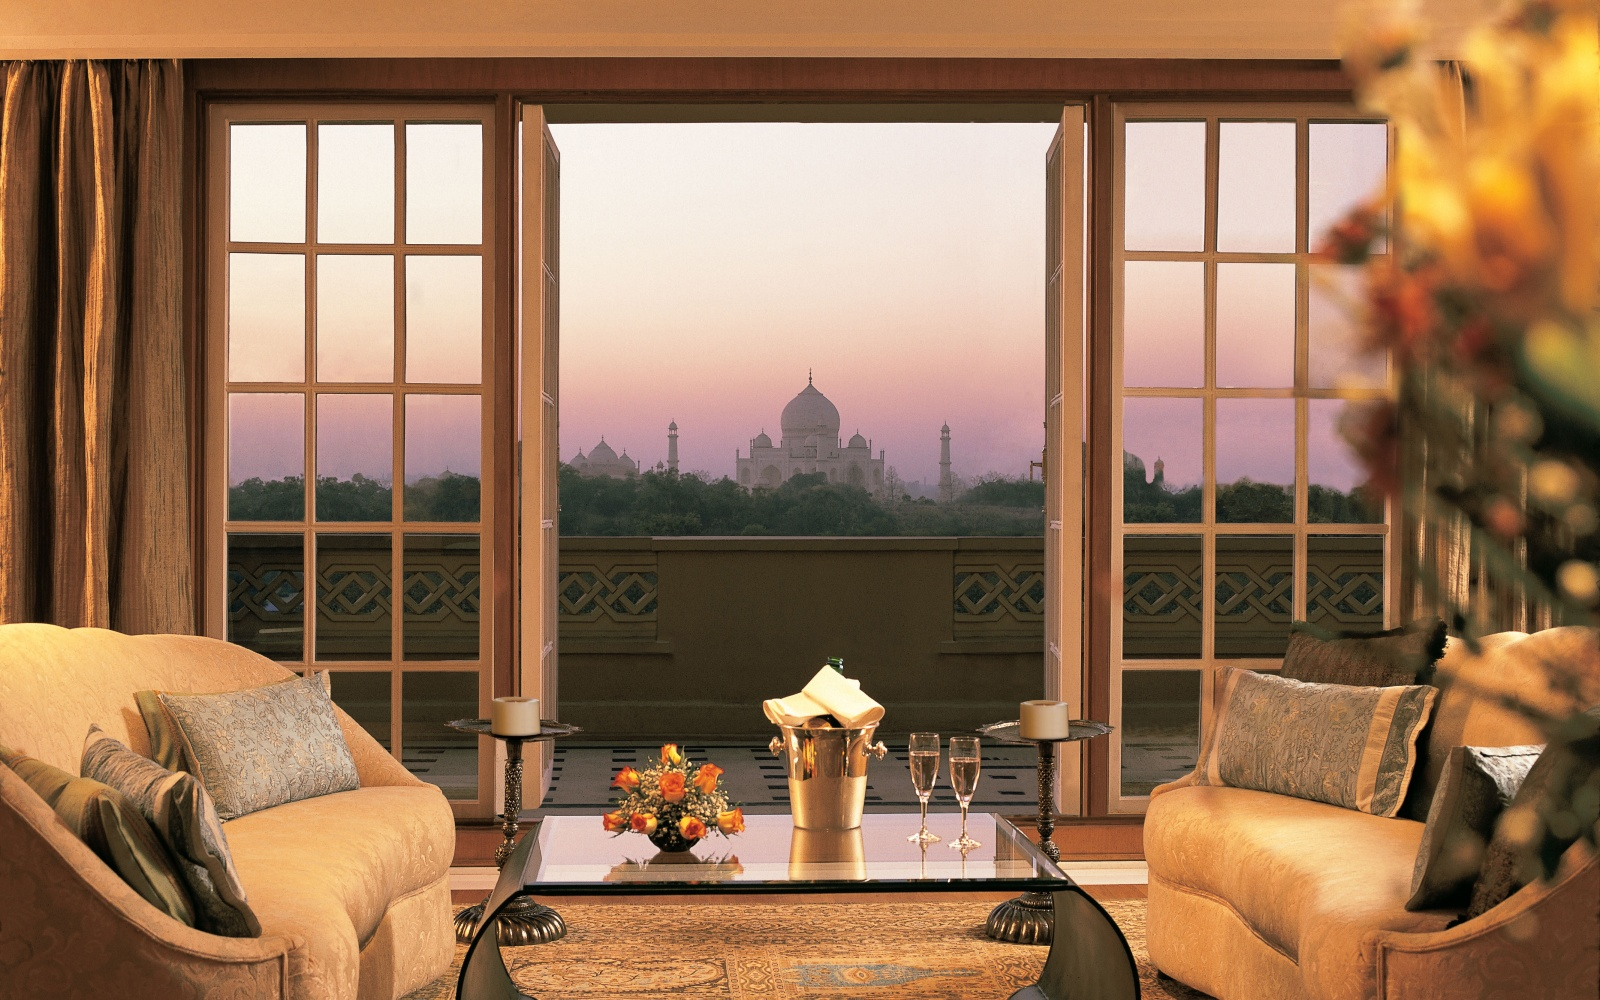 The Oberoi Amarvilas, Agra